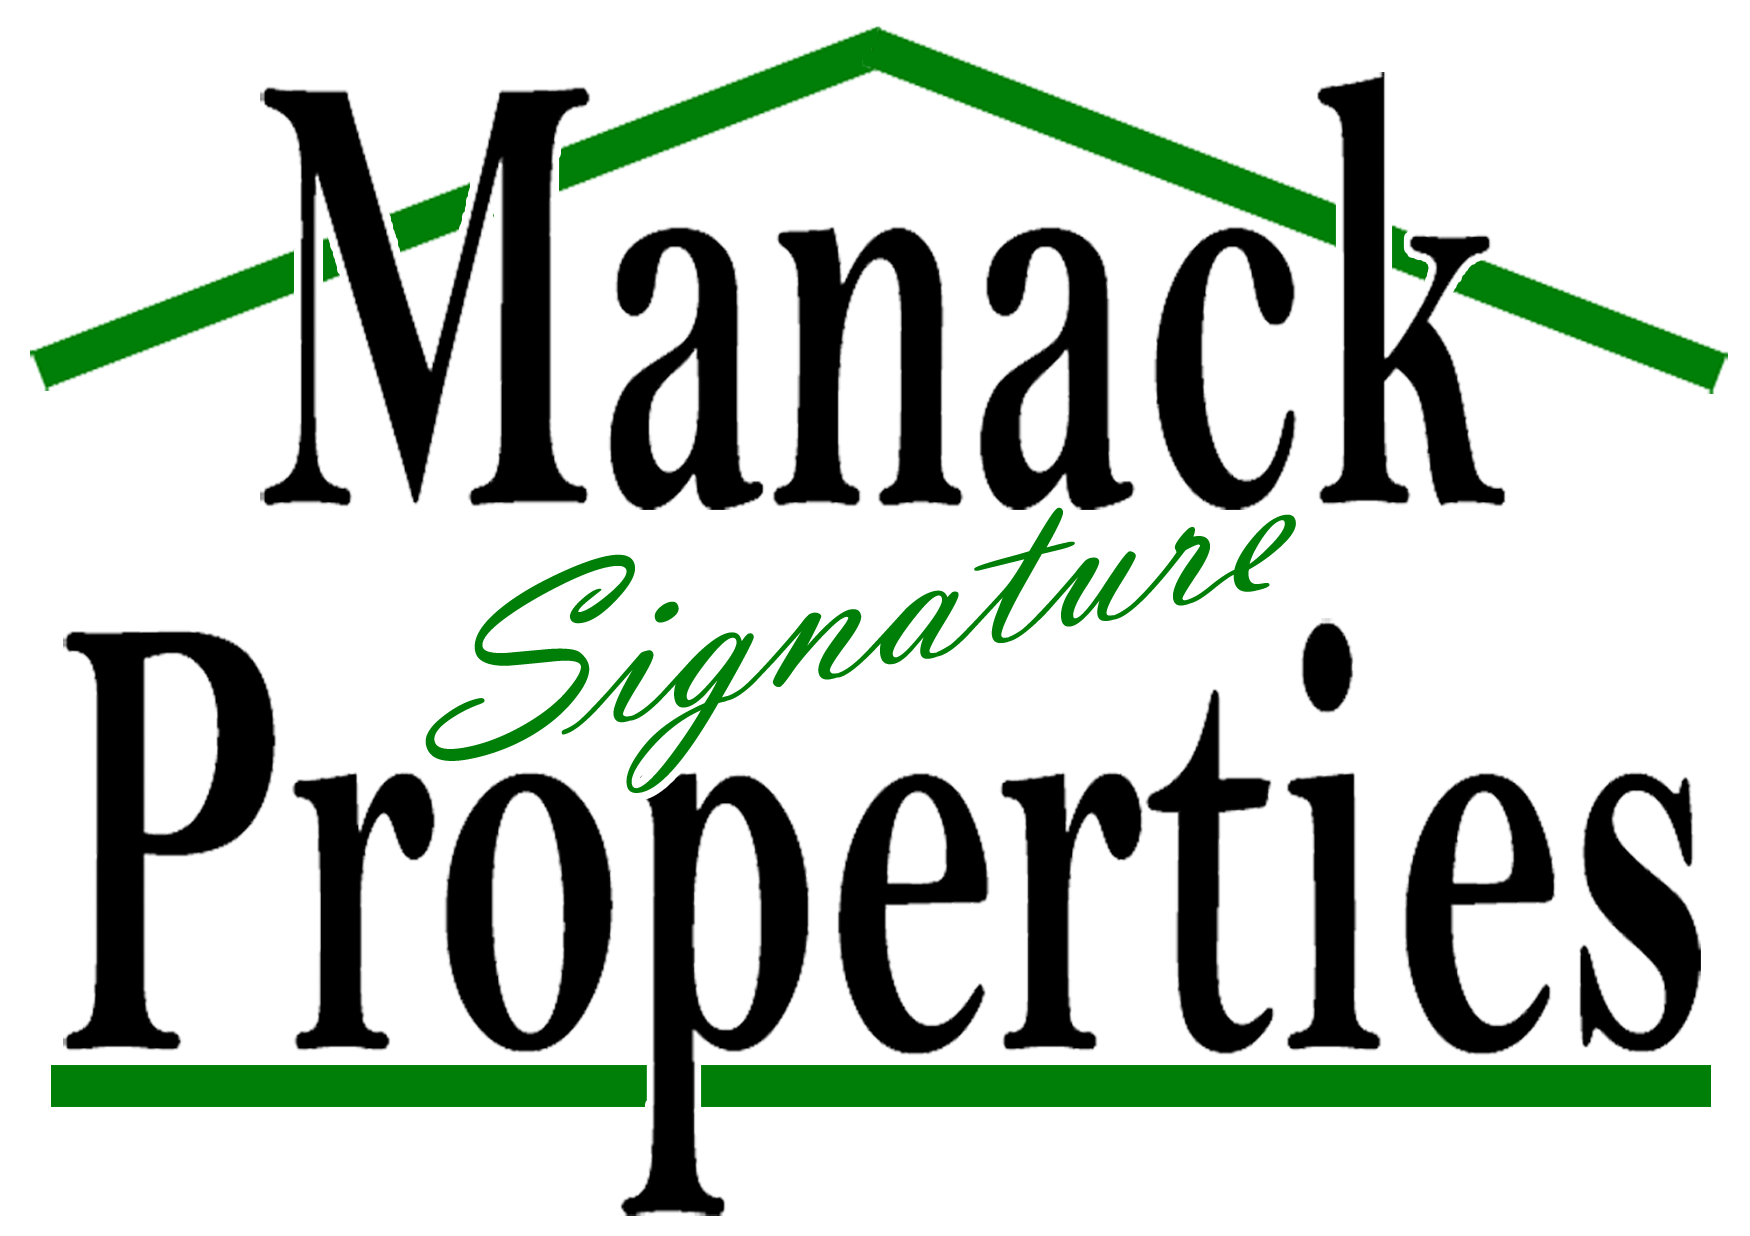 Manack Signature Properties Statesboro, GA | Homes For Sale | Commercial Properties